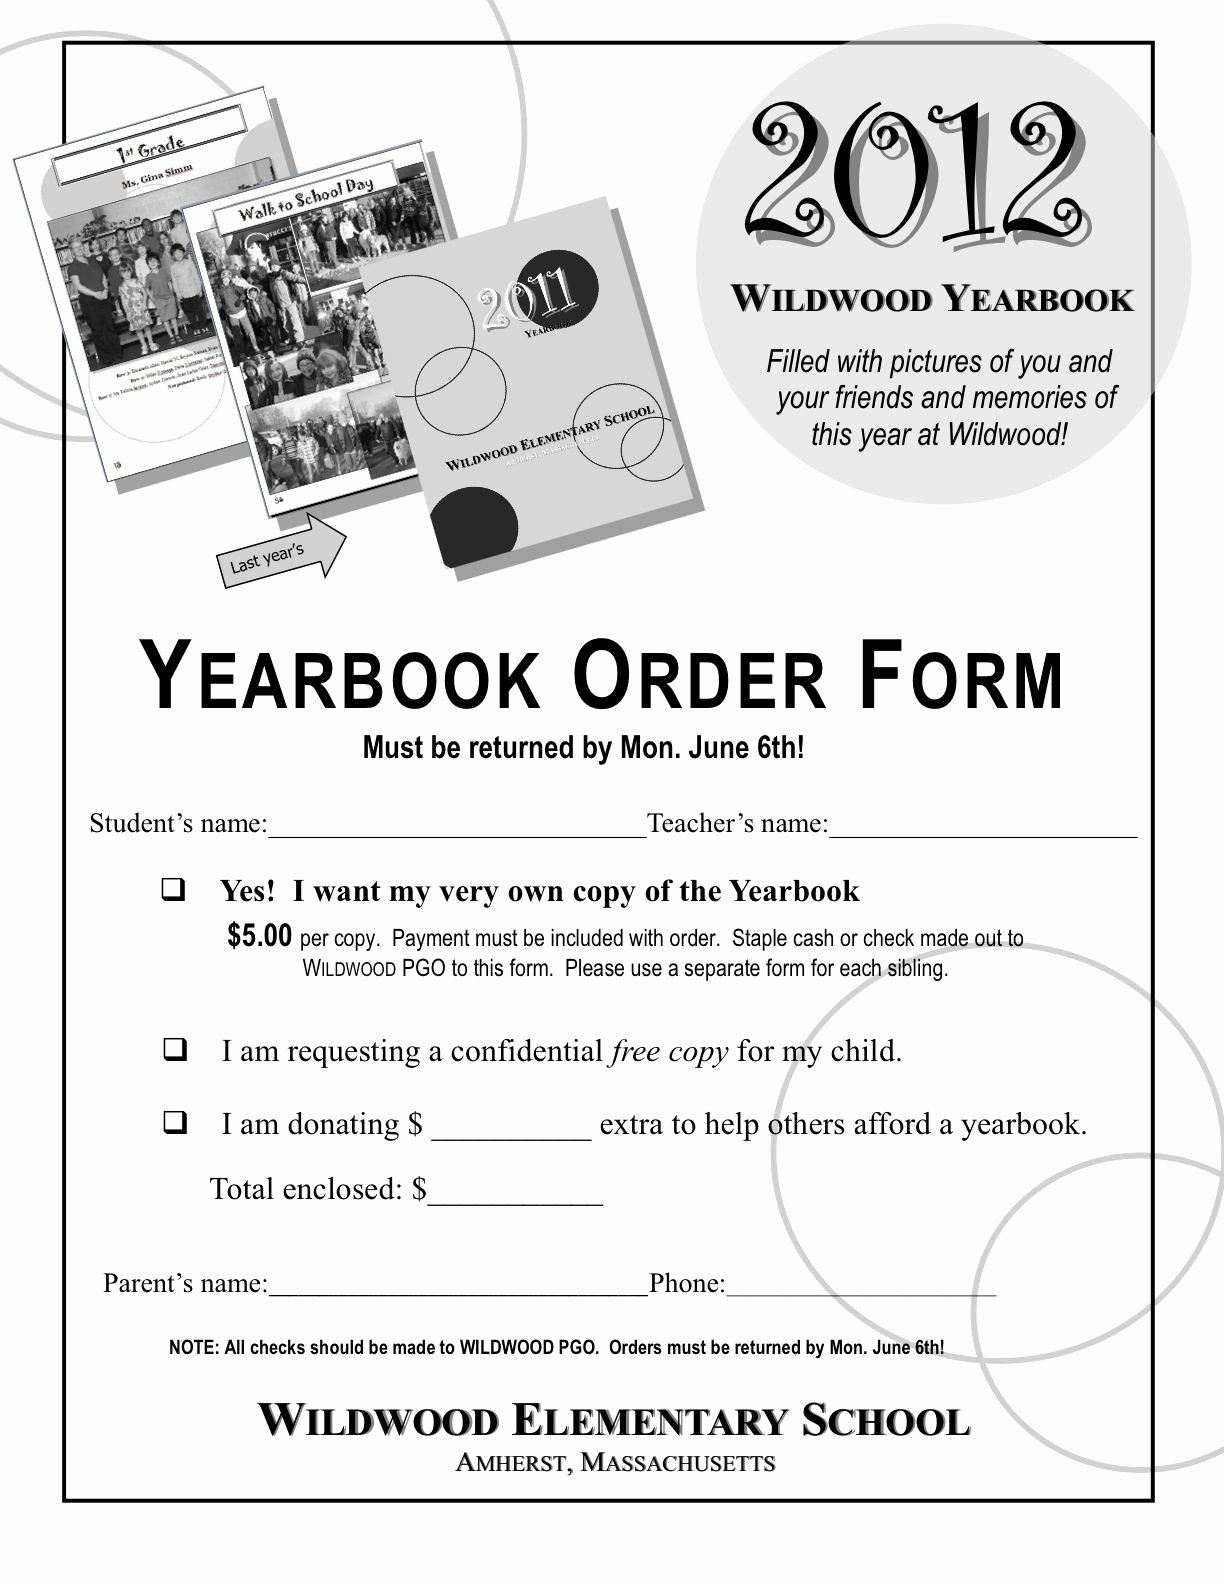 School Photo order form Template Elegant Yearbook order form Template Google Search